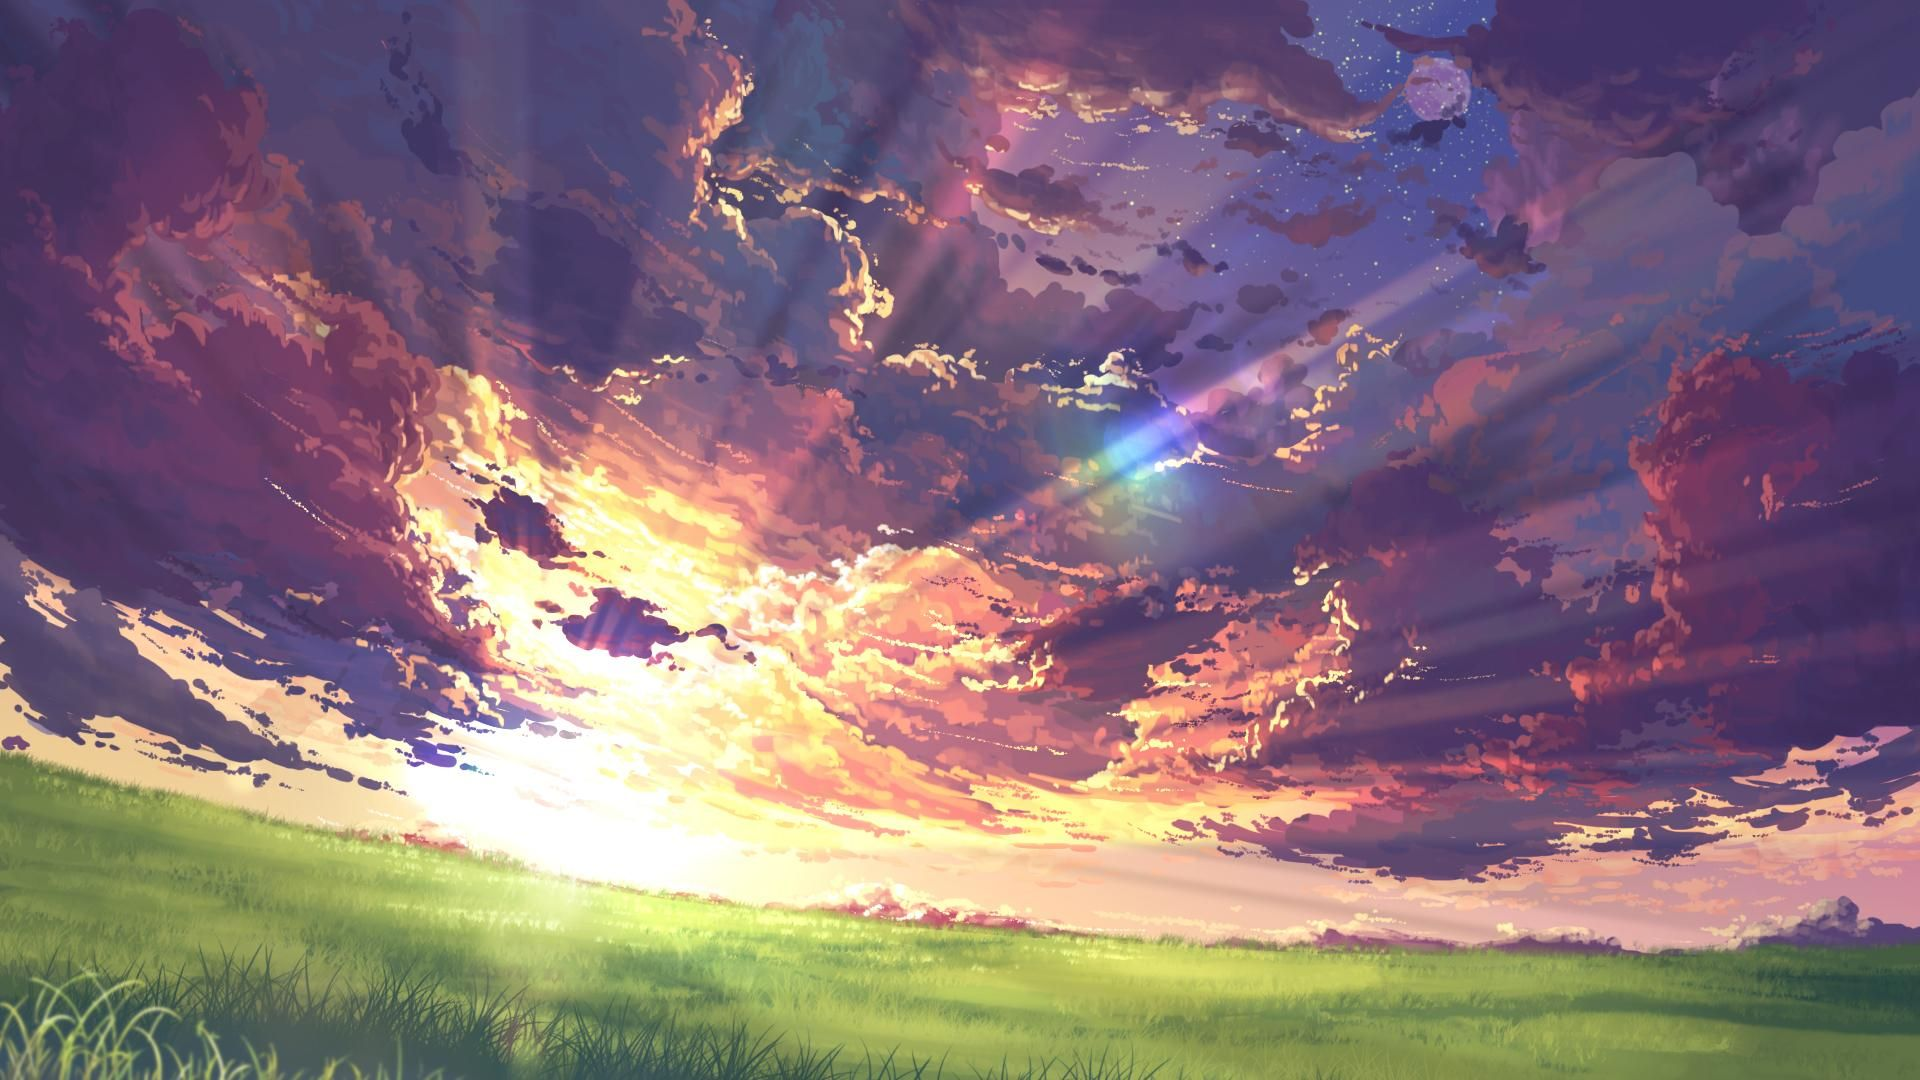 Vibrant Dawn [1920 x 1080] Anime wallpaper 1920x1080